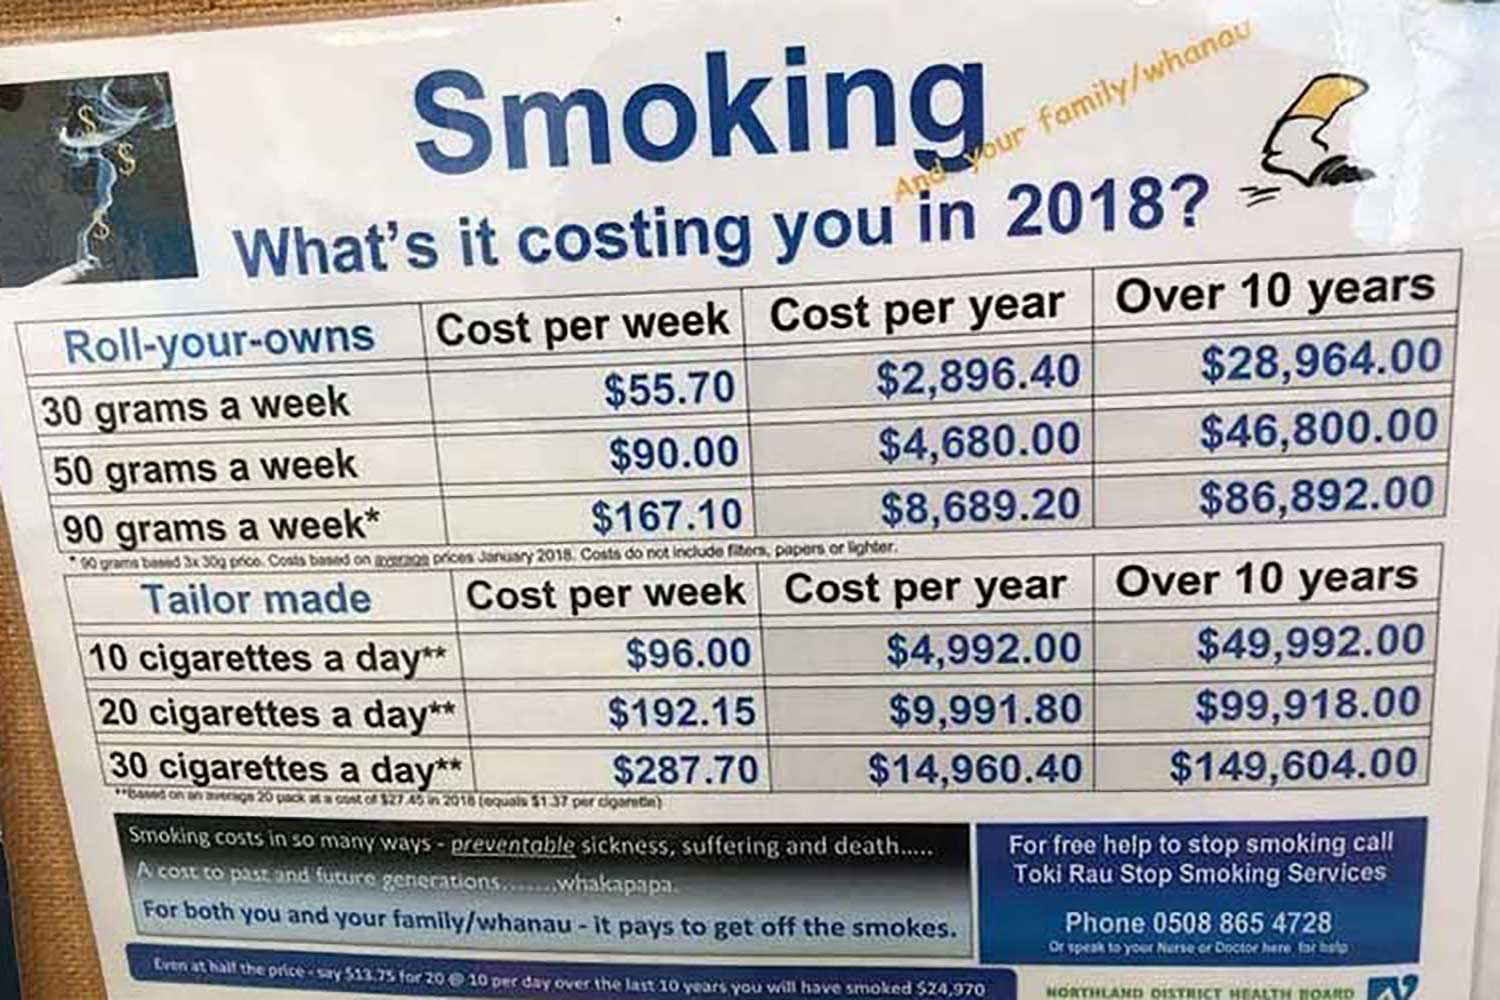 How much is smoking costing you this year? Newcastle Hypnotherapy